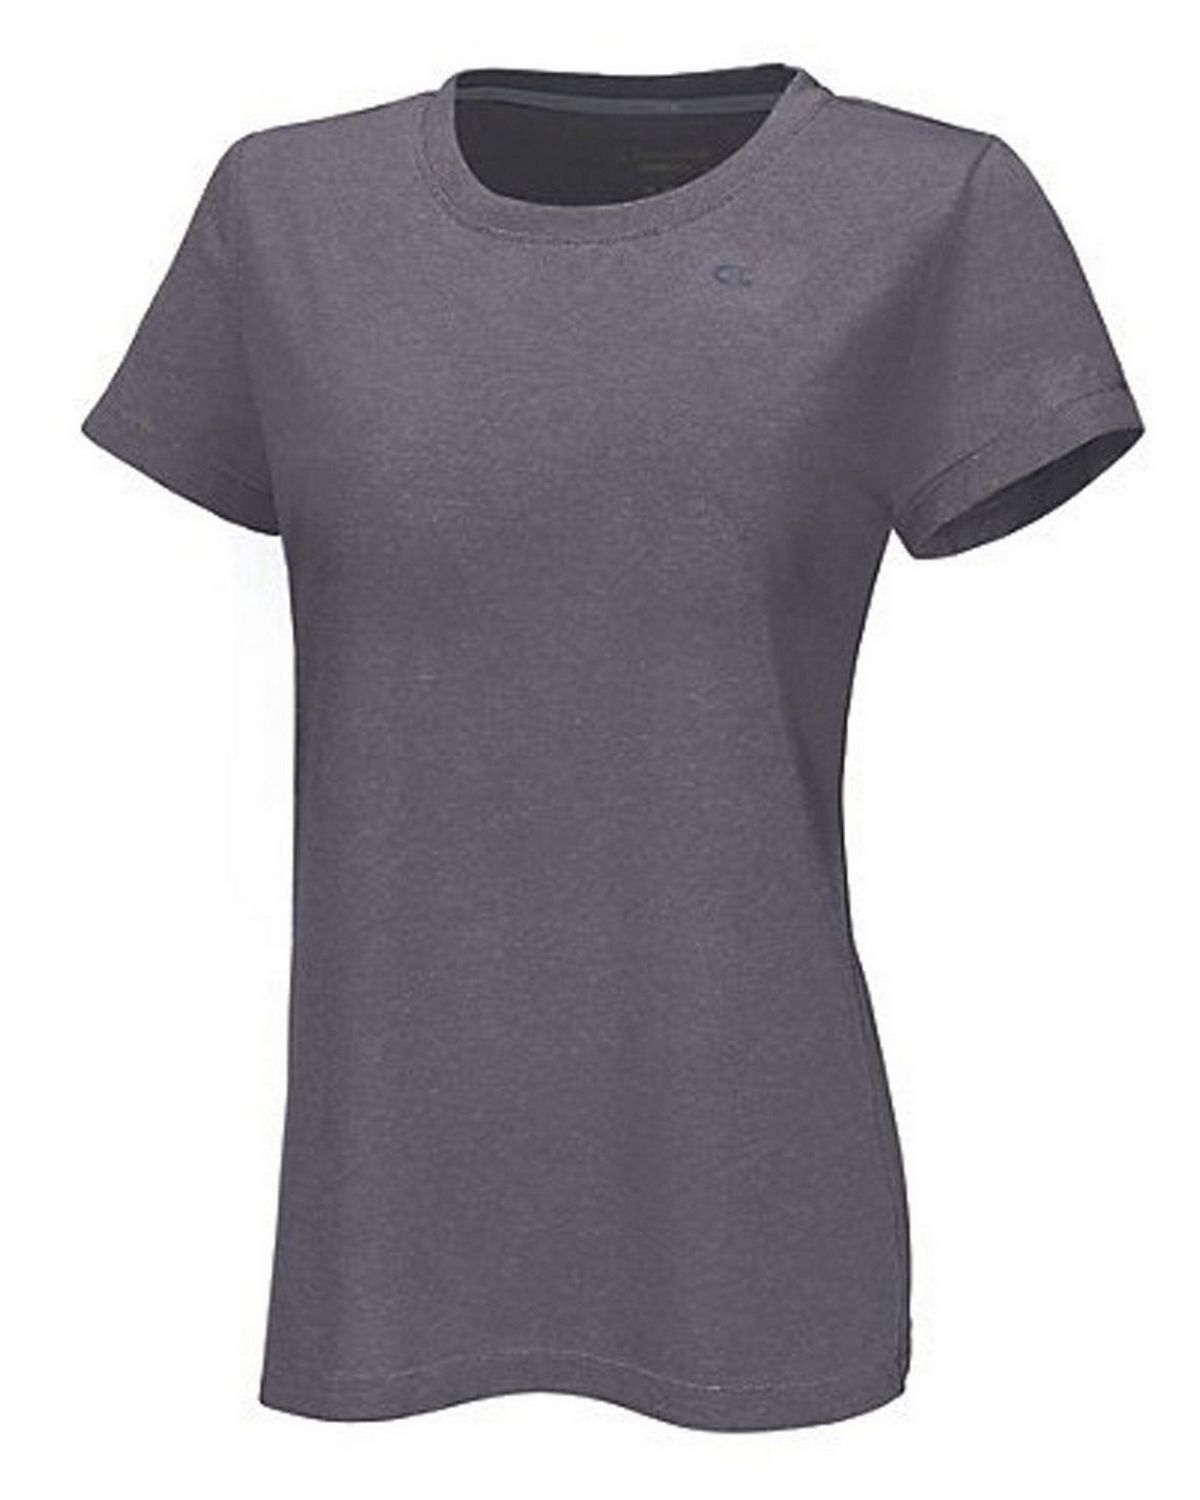 Champion 7963 Vapor PowerTrain Short Sleeve Heather Tee - Granite Heather - S 7963